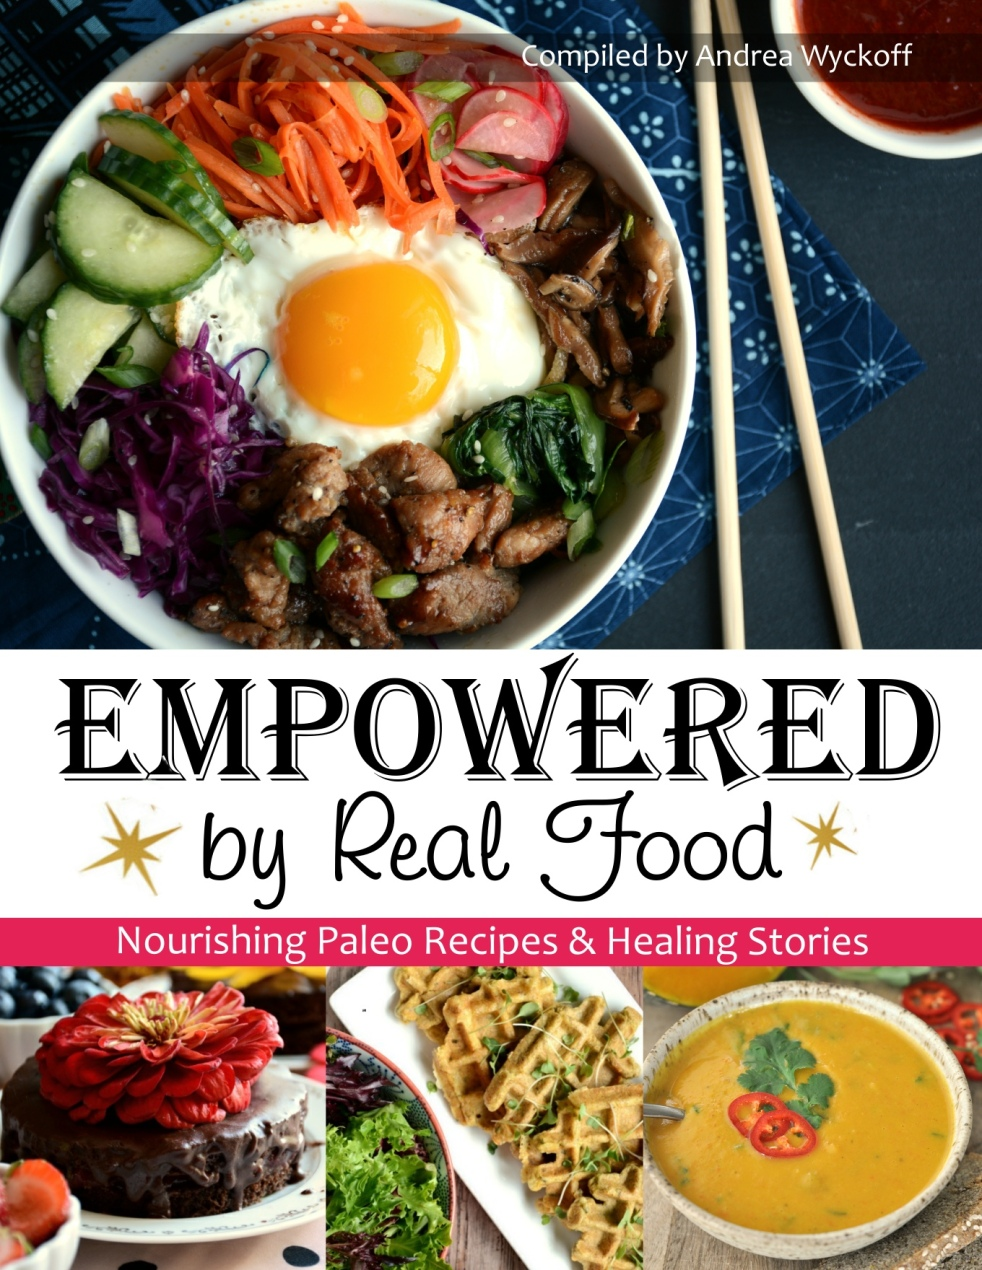 Empowered by Real Food Compiled by Andrea Wyckoff 160 Final